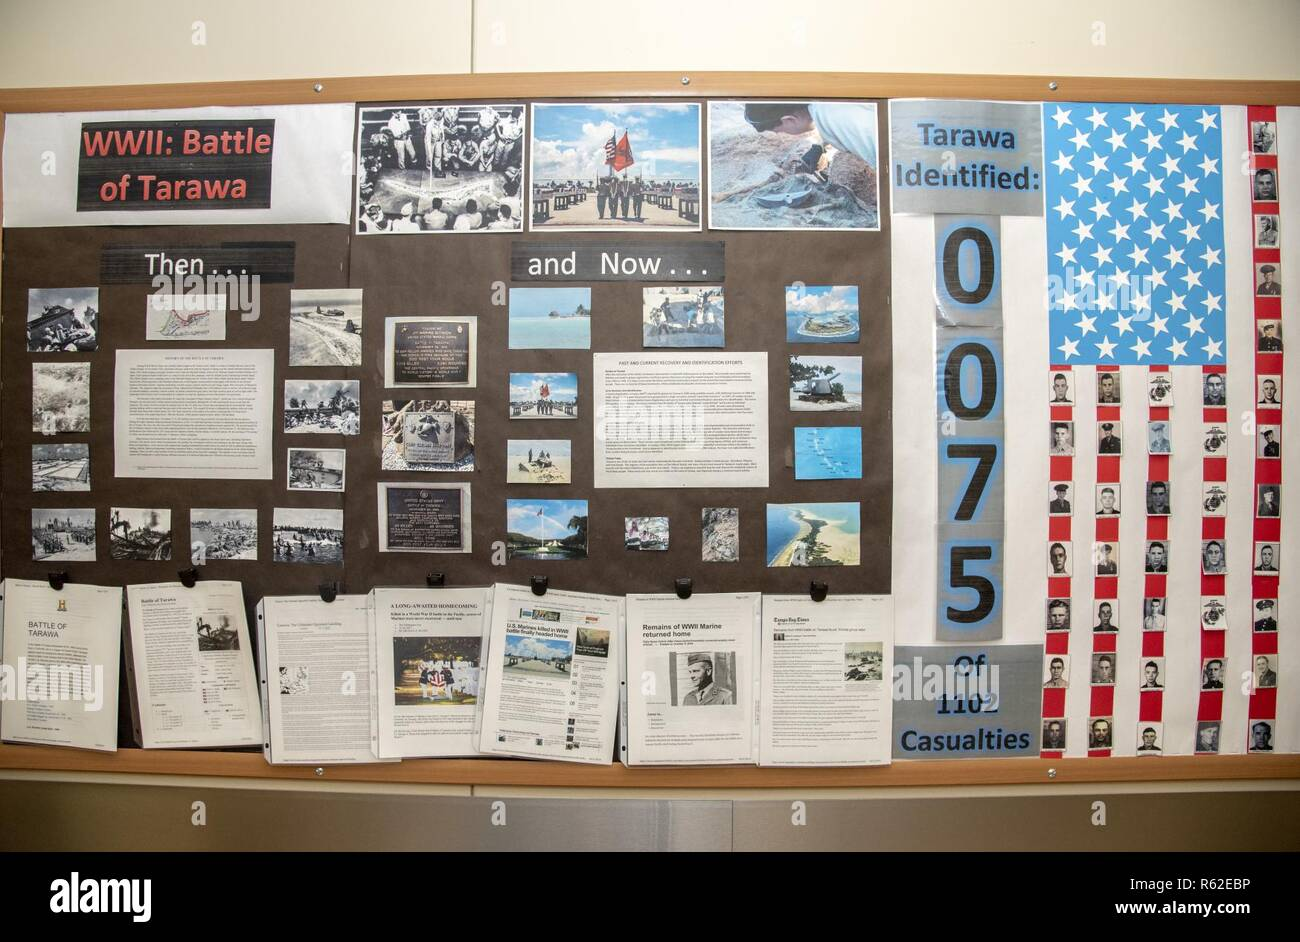 The Battle of Tarawa is displayed at the Armed Forces Medical Examiner System Department of Defense DNA Operations lab November 16, 2018, at Dover Air Force Base, Del. November 20-23 marks the 75th anniversary of the battle. AFMES along with the Defense POW/MIA Accounting Agency have worked through the years to identify 75 missing service members and reunite them with their families. - Stock Image